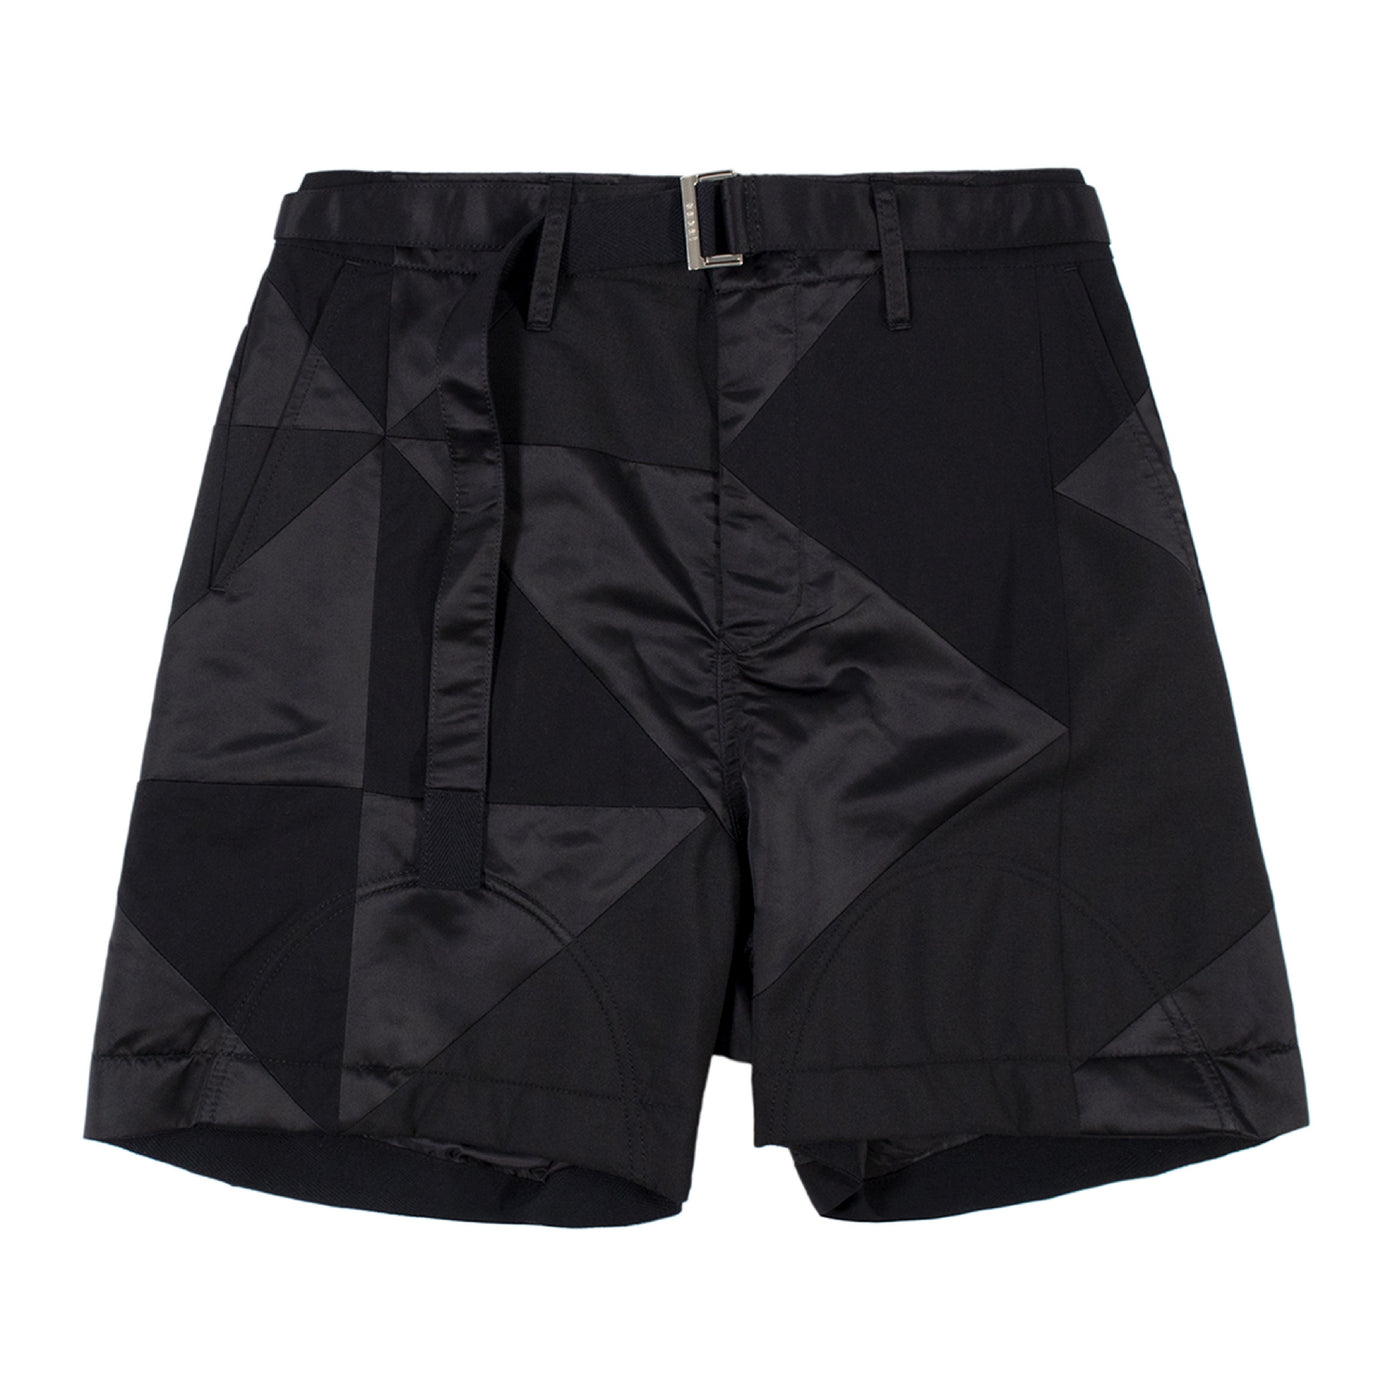 Load image into Gallery viewer, SACAI PRINT SHORTS BLACK